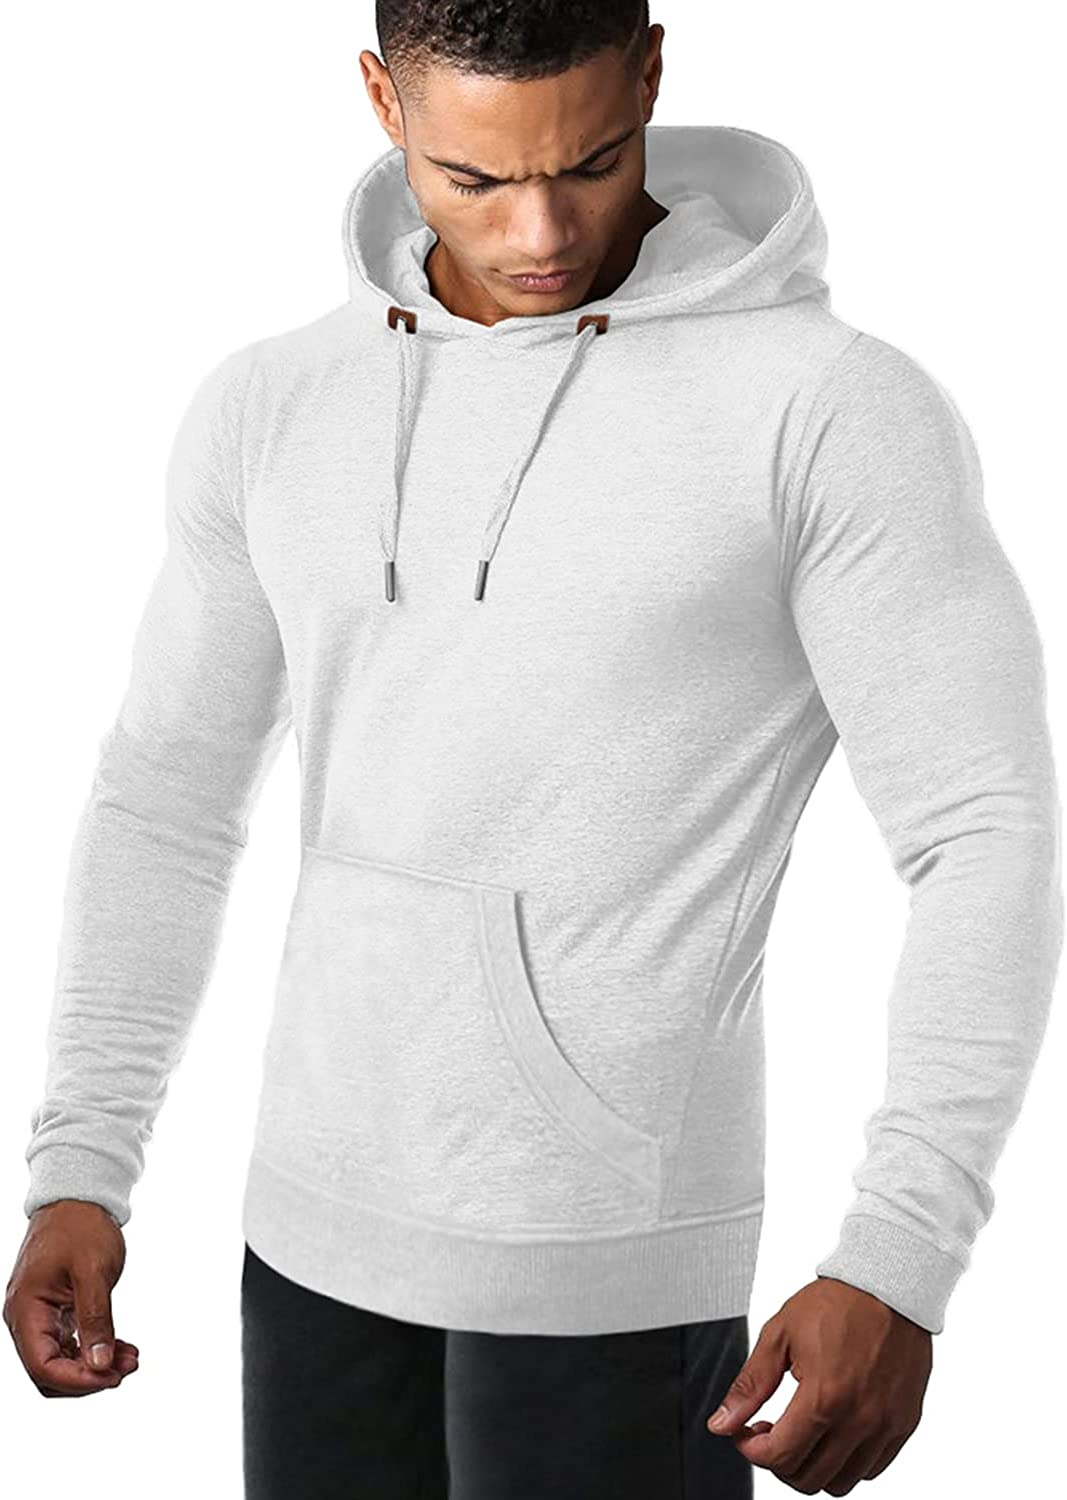 COOFANDY Men's Athletic Hoodie Long Sleeve Drawstring Sports Pullover Hooded Gym Workout Sweatshirt with Pockets